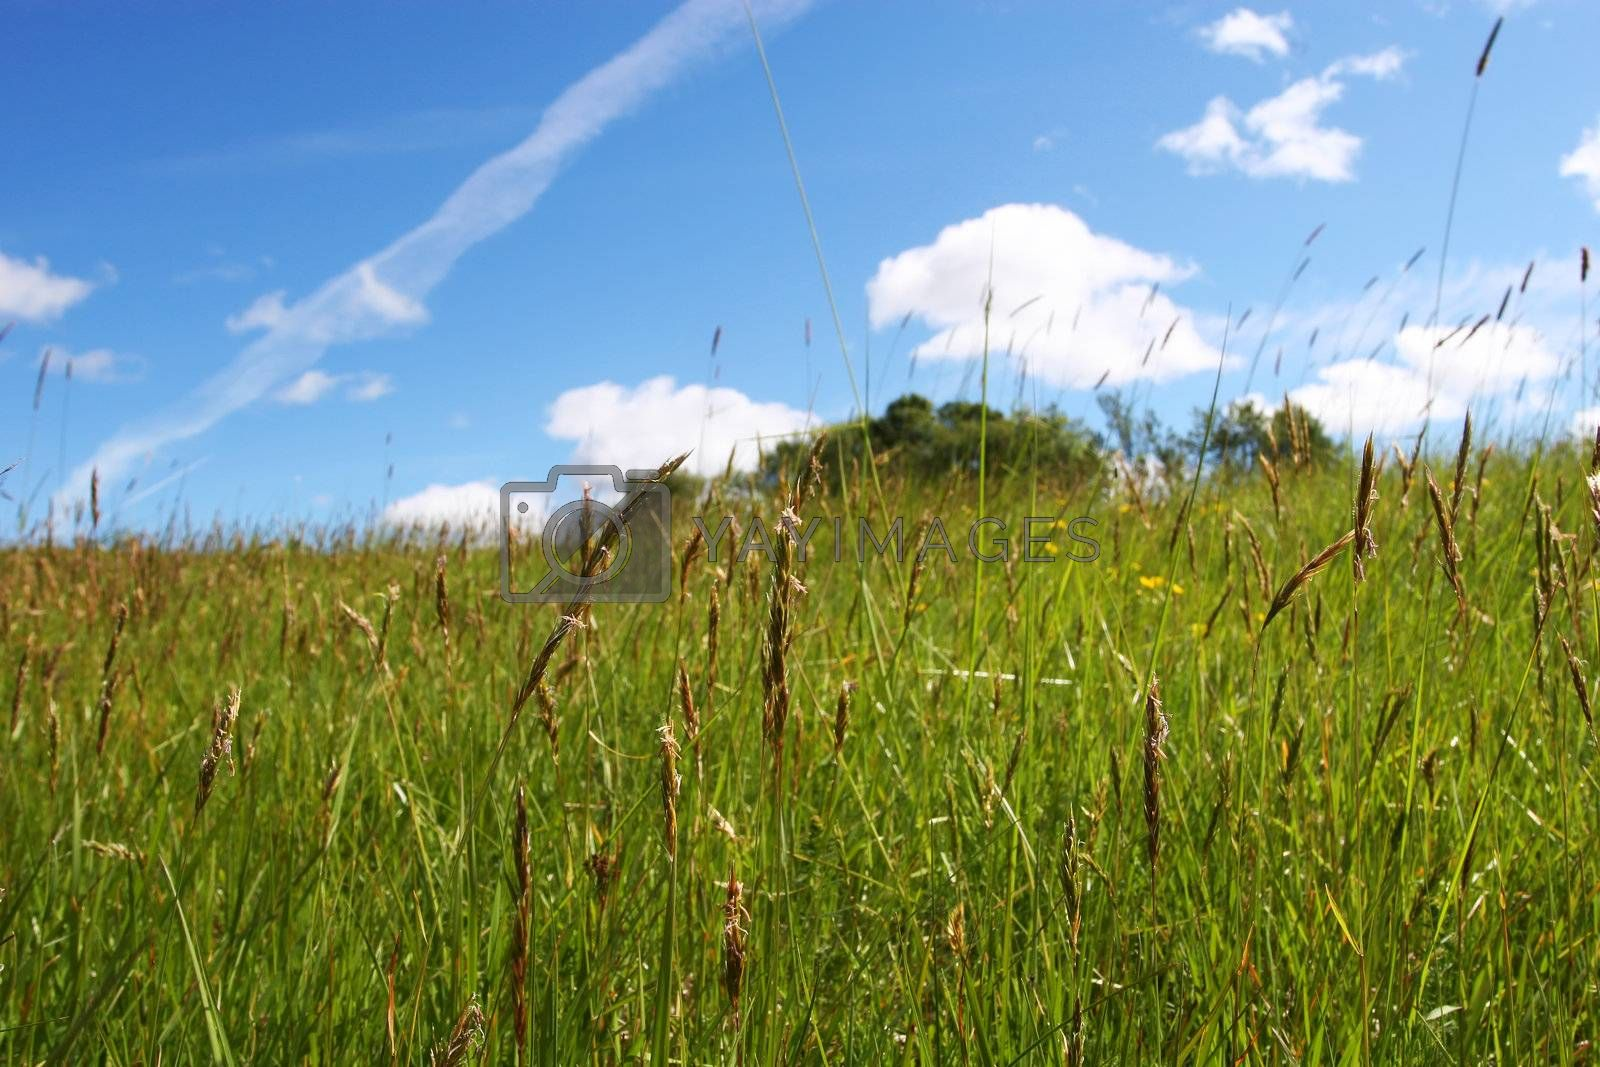 green field during summer, focus on straws closest blue sky in background,